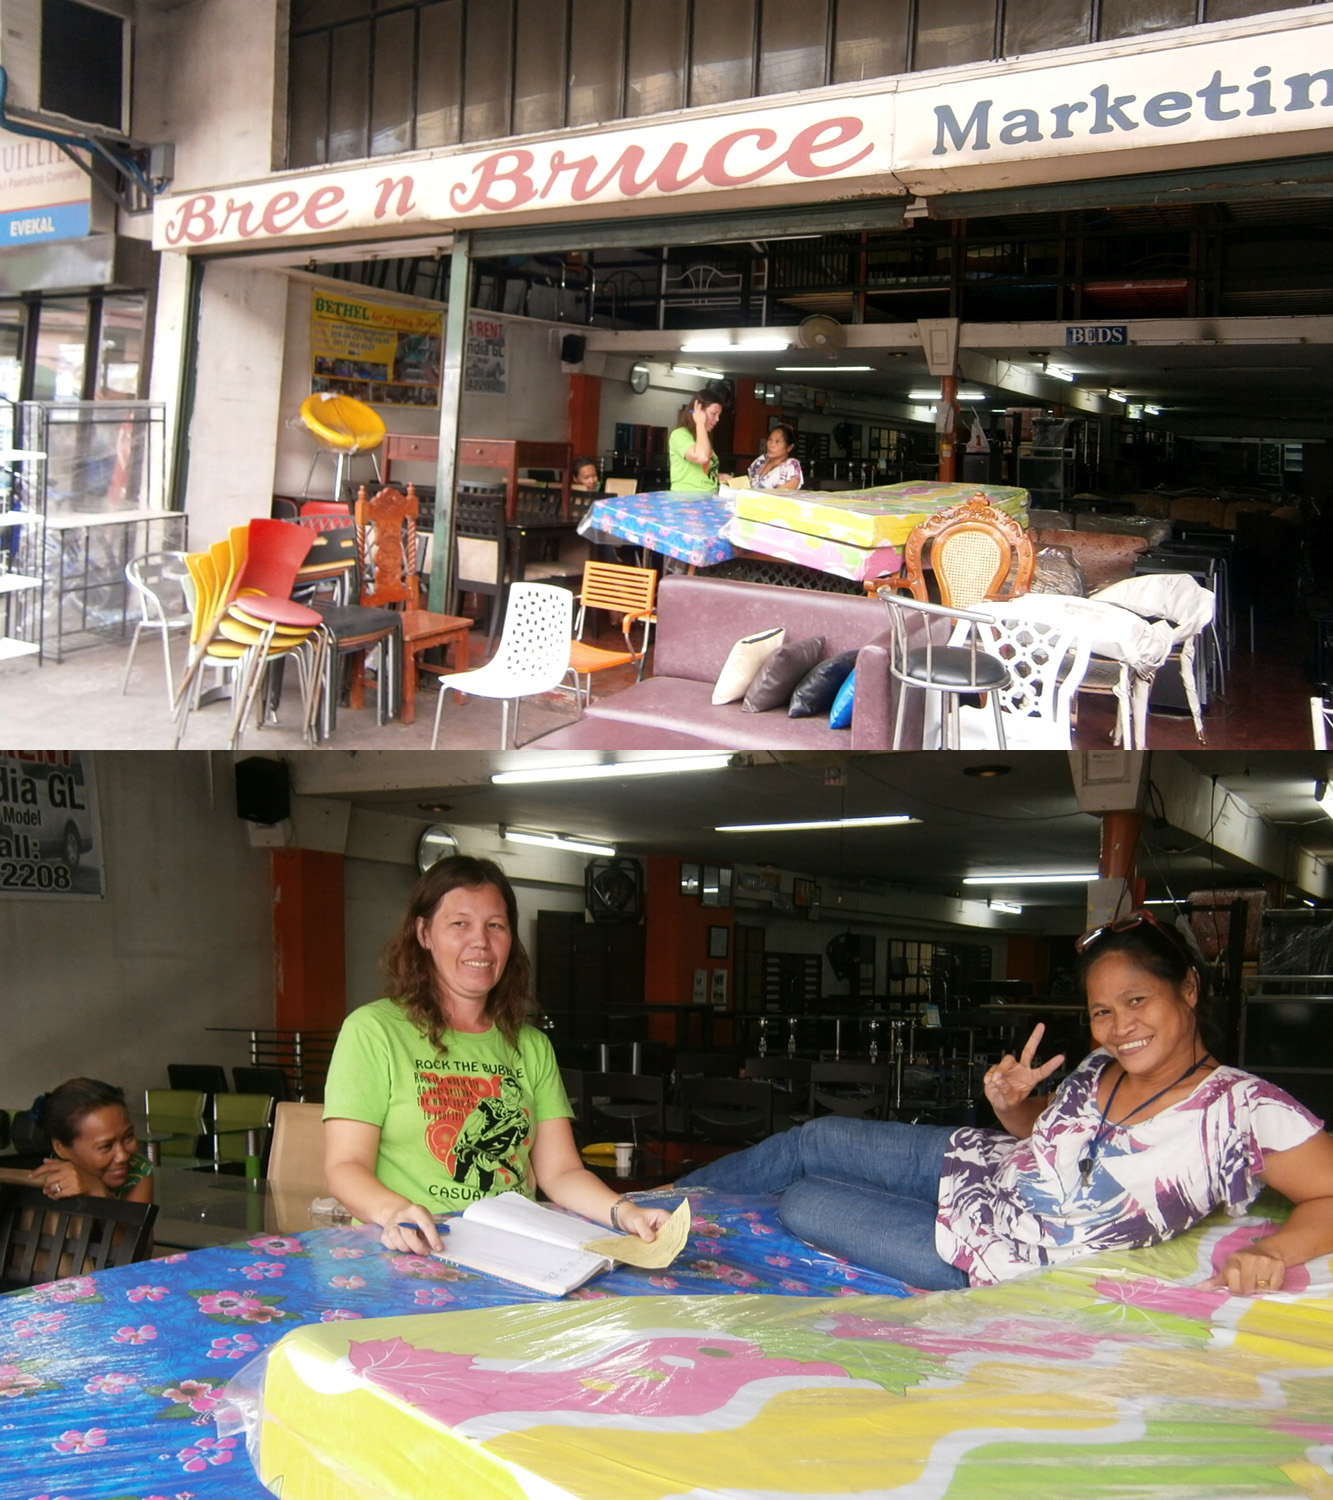 Furniture shops in manila - Bree N Bruce Marketing Furniture Store And Its Lovely Staff Paco Manila